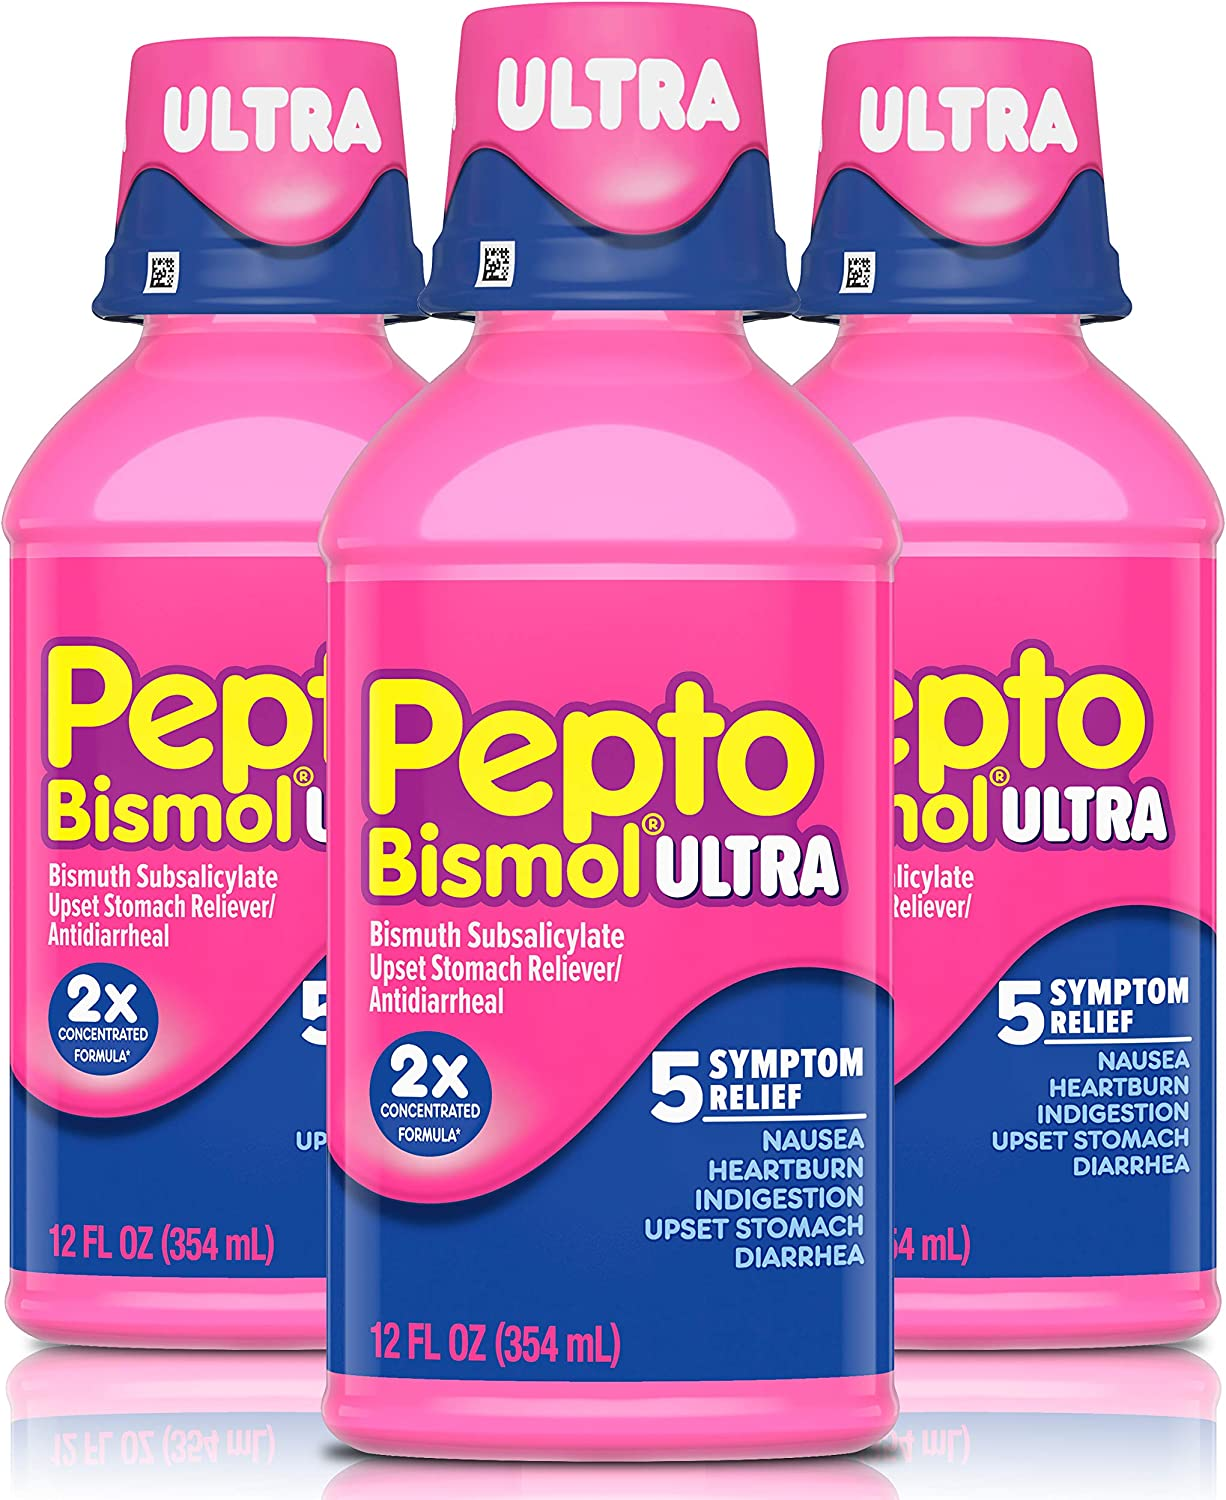 Pepto Bismol Ultra Liquid, Cherry Flavor, 3 Pack of 12 fl oz, for Relief of Gas, Anti Diarrhea, Heartburn, Nausea, Upset Stomach, and Indigestion (36 oz. Total): Health & Personal Care